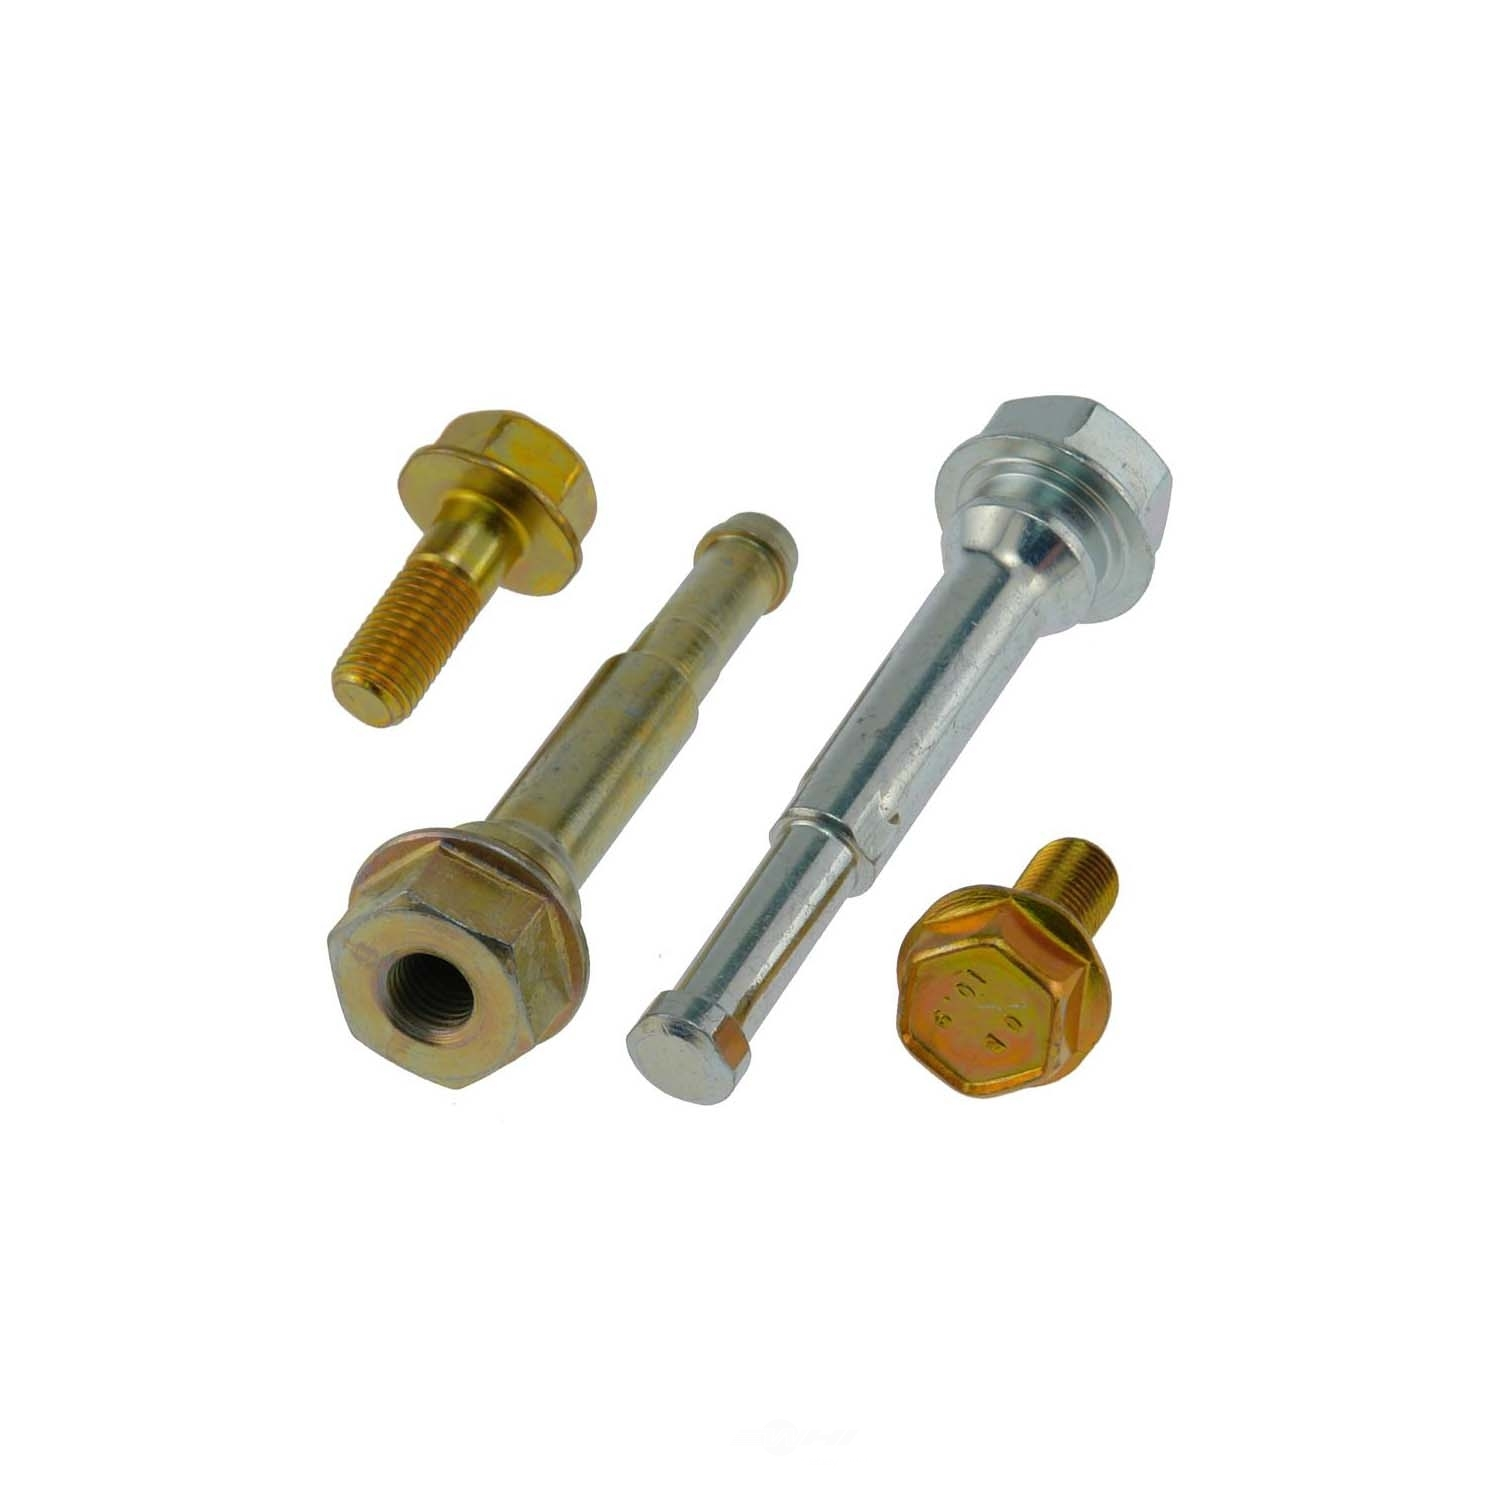 CARLSON QUALITY BRAKE PARTS - Disc Brake Caliper Guide Pin Kit (Front) - CRL 14184